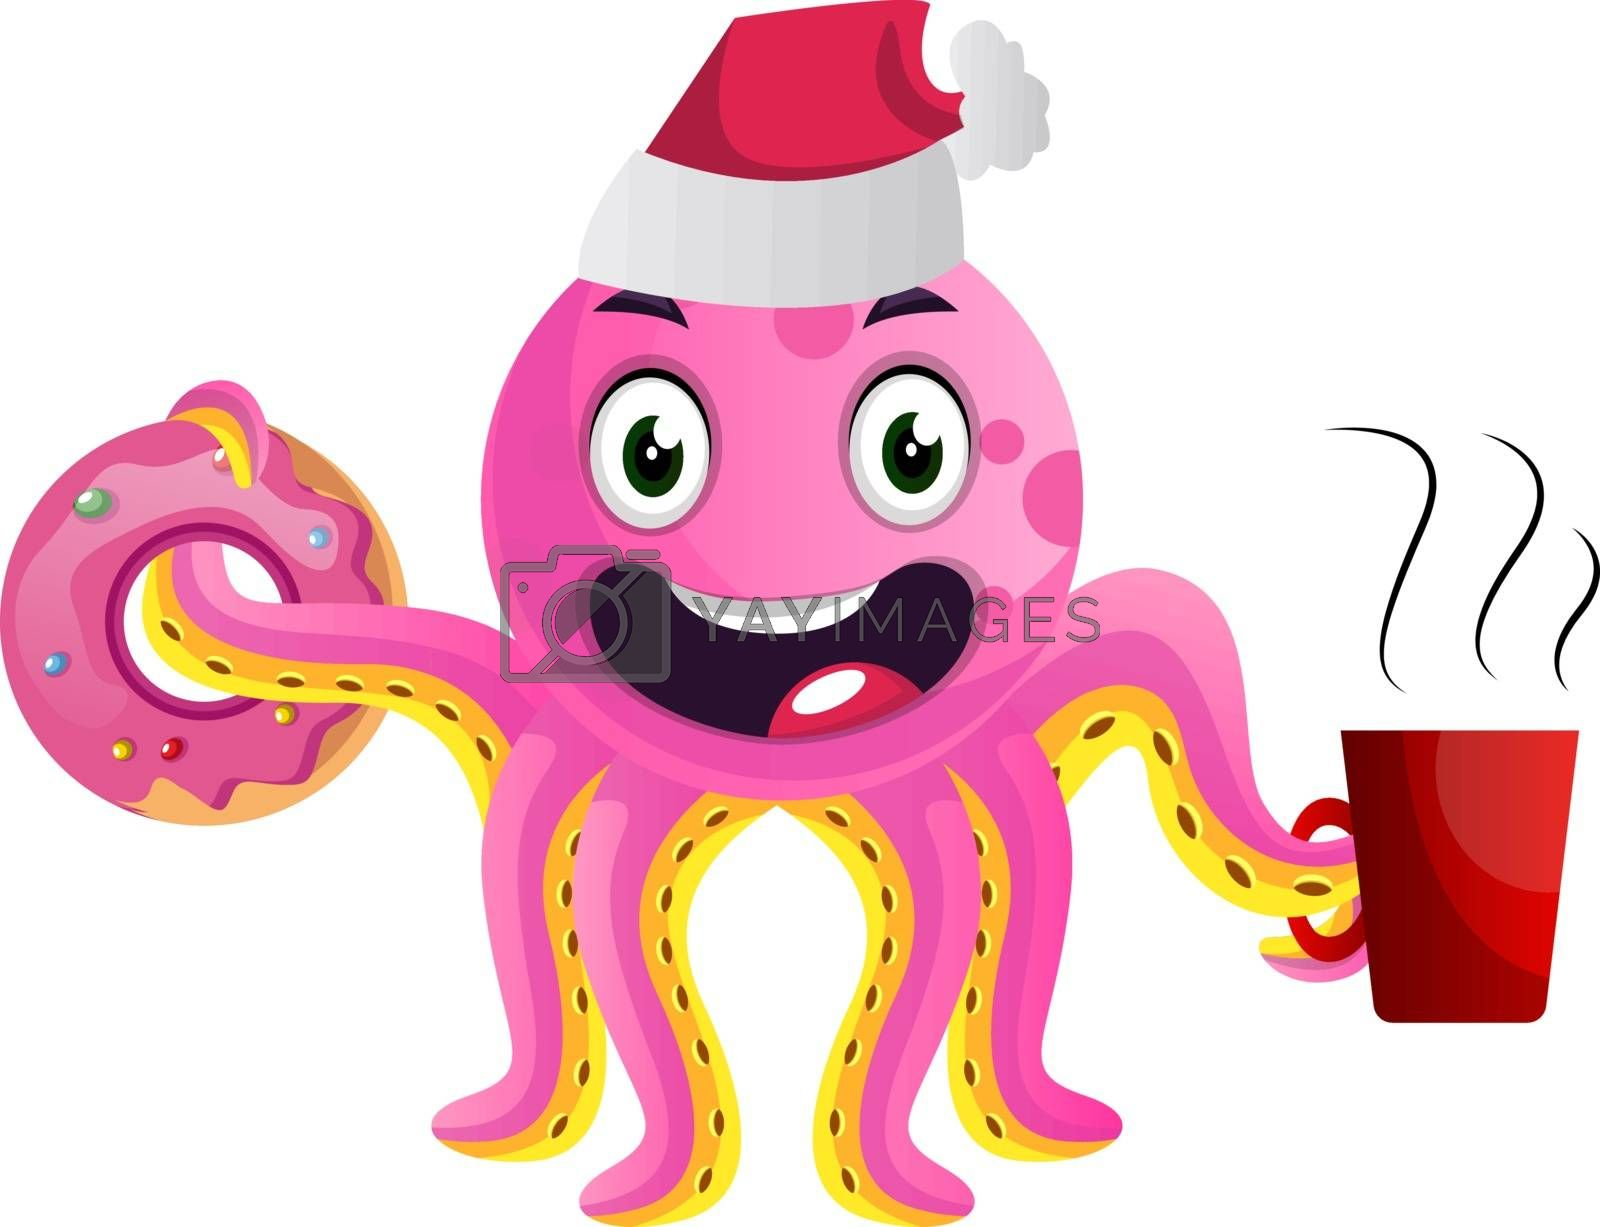 Royalty free image of Pink party octopus illustration vector on white background by Morphart